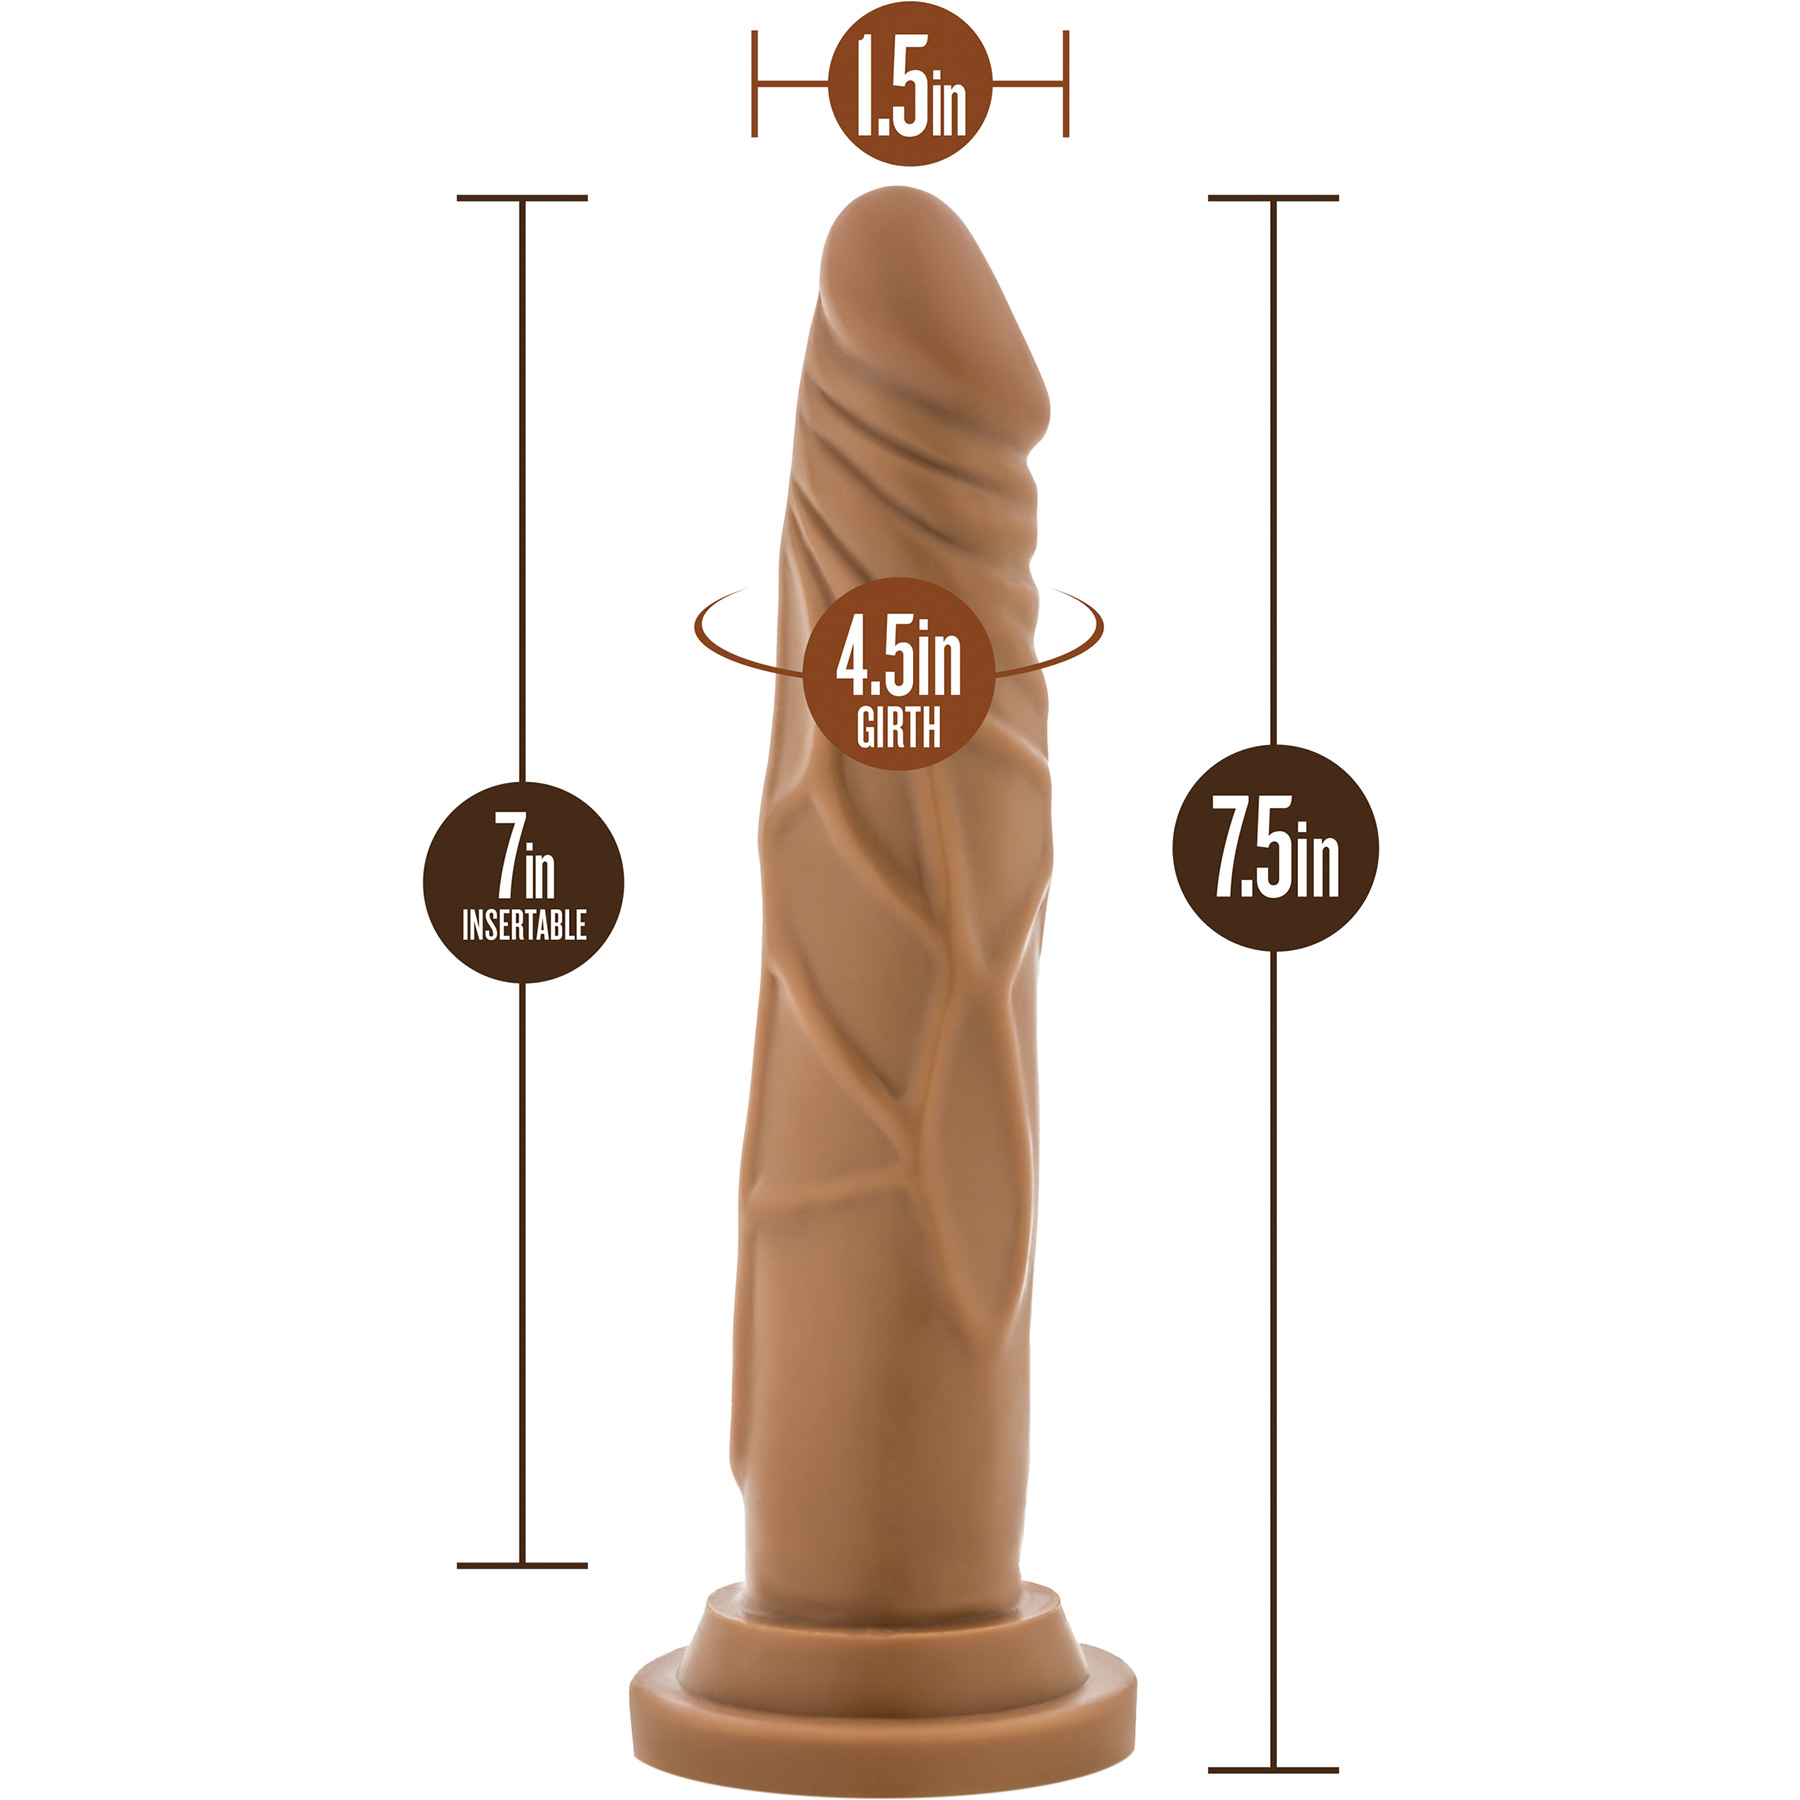 Dr. Skin 7.5 Inch Basic Realistic Dildo With Suction Cup by Blush - Measurements